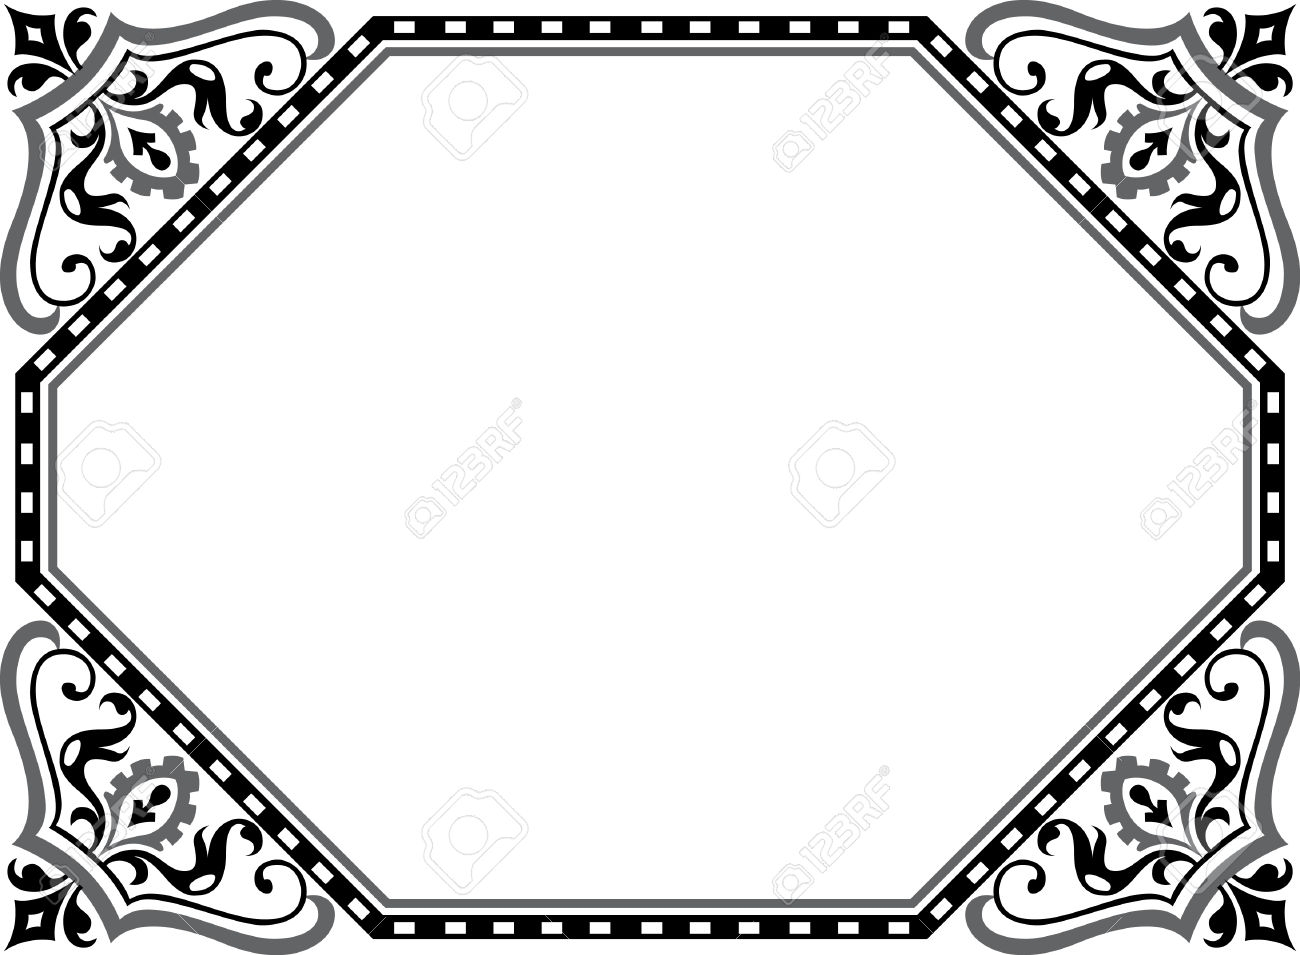 Muslim Wedding Border Clipart 6 Clipart Station